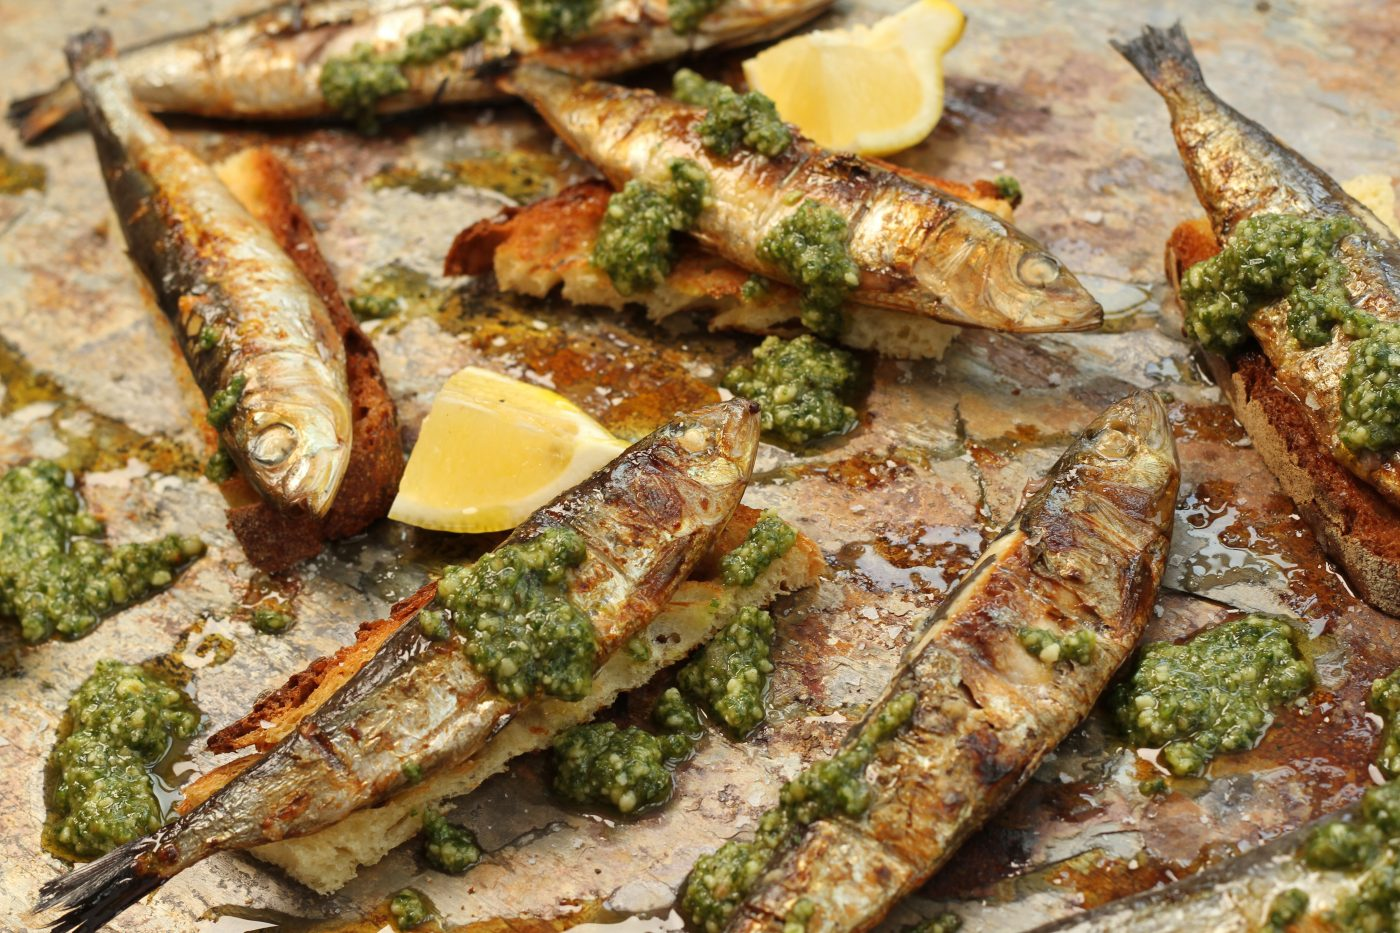 Barbecued Sardines on Toasted Sourdough with Walnut Pesto